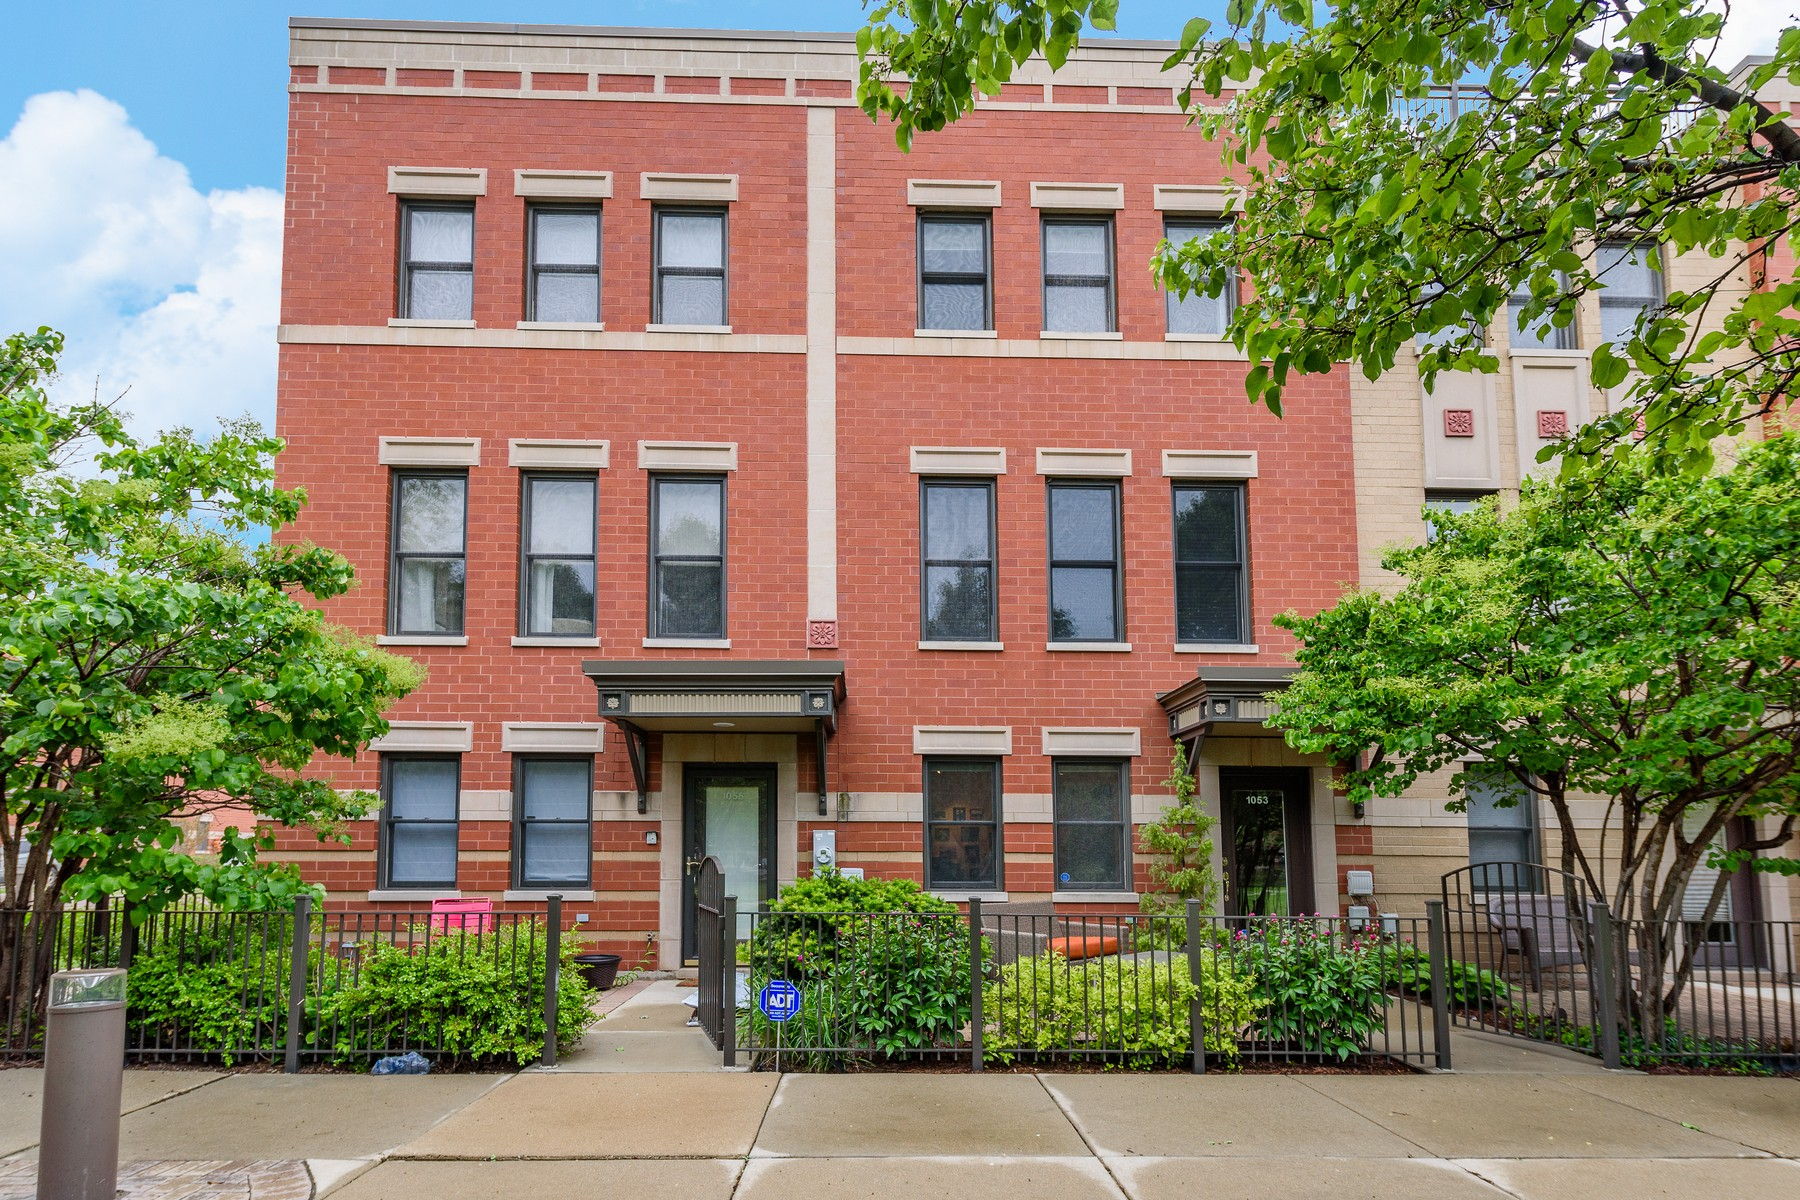 Villetta a schiera per Vendita alle ore Completely Renovated River North Townhome! 1053 N Kingsbury Street Near North Side, Chicago, Illinois, 60610 Stati Uniti